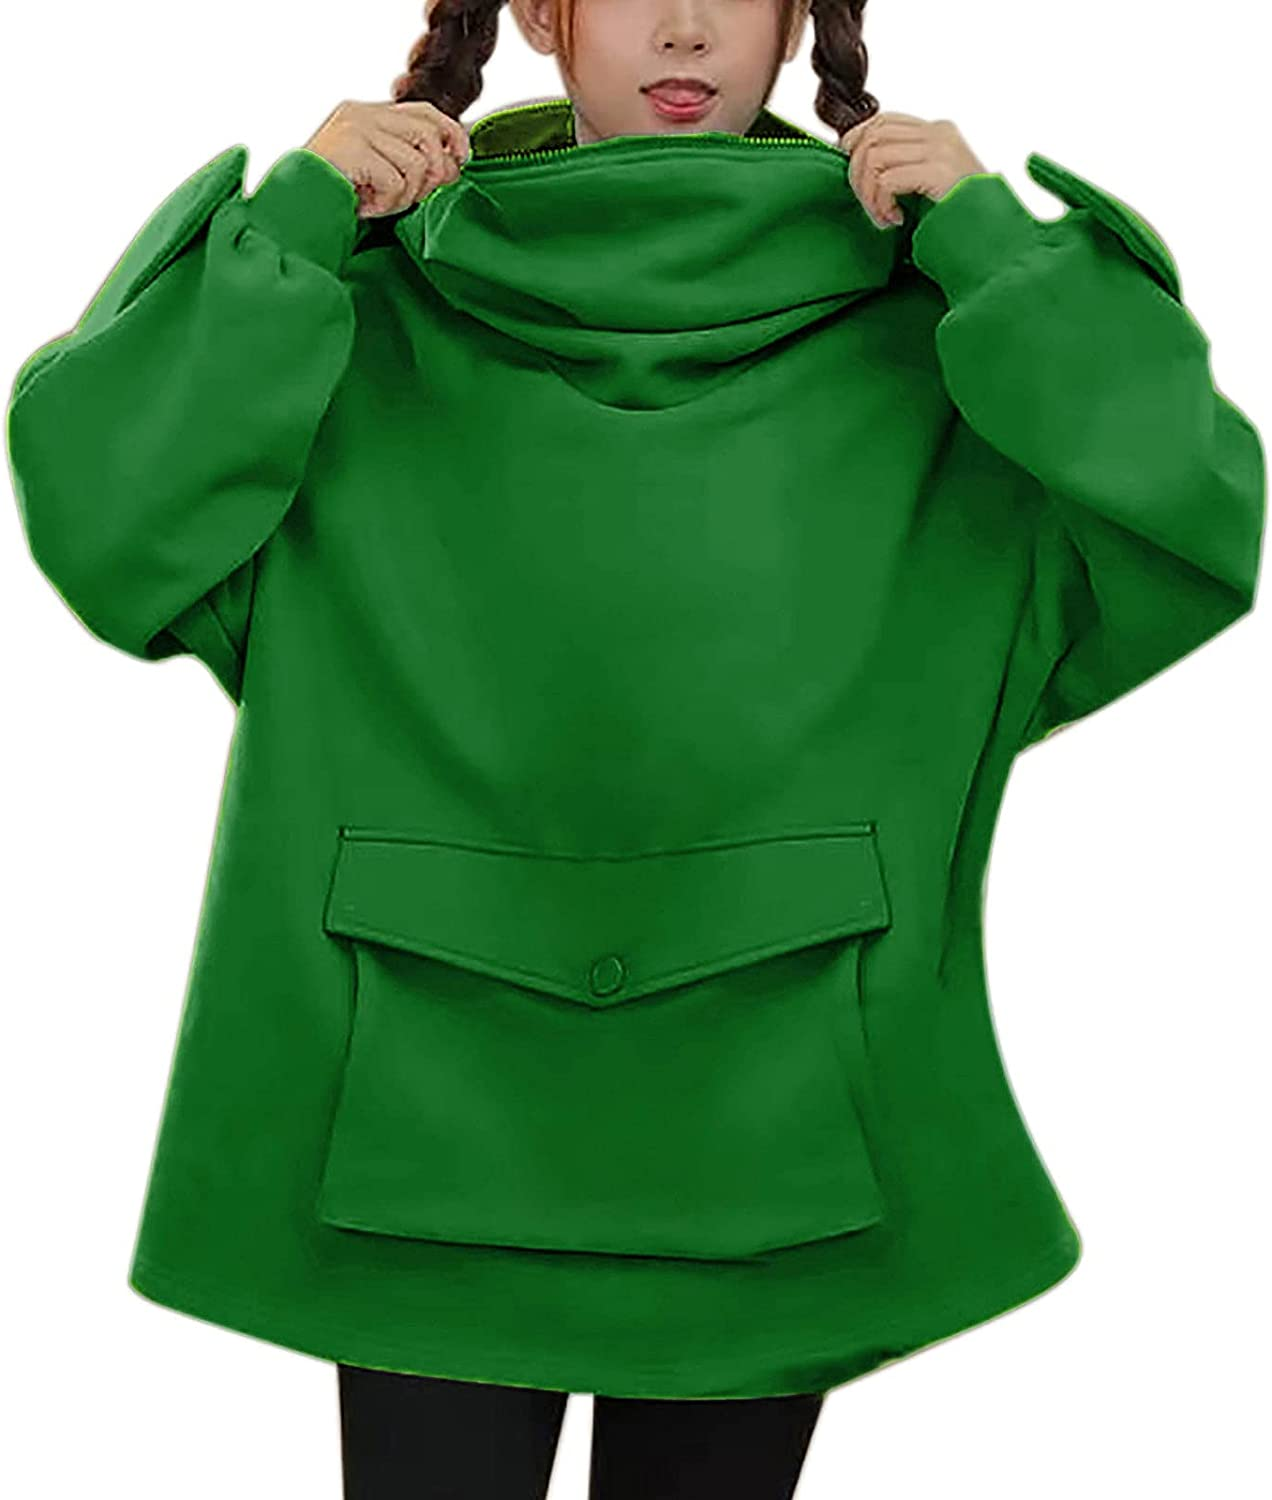 Hotkey Sweatshirts for Women, Women's Cute Frog Hooded with Large Front Pocket Long Sleeve Pullover Zipper Hoodies